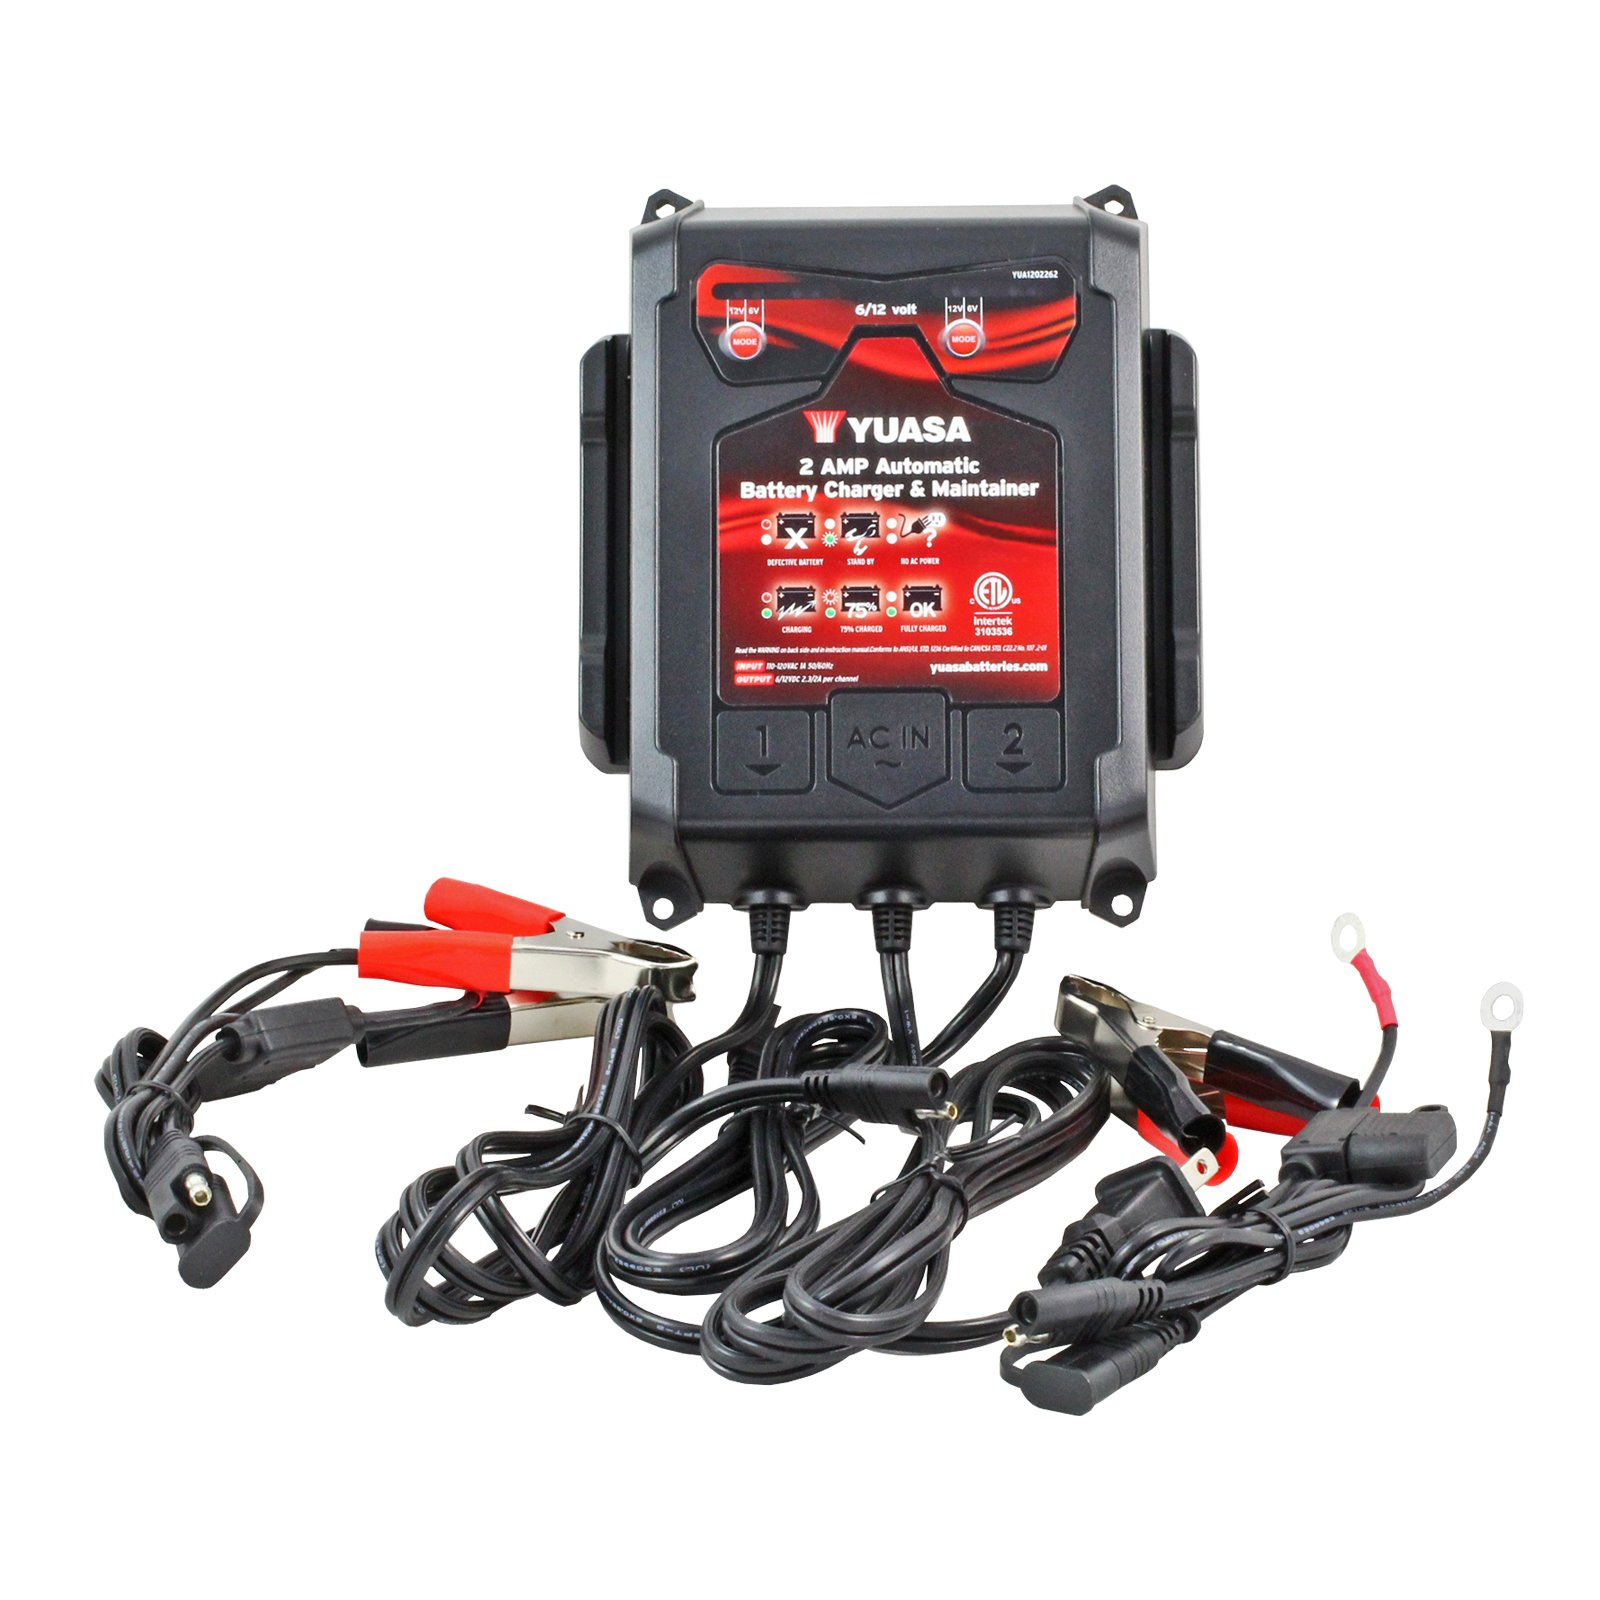 6//12 Volt 2A Sealed Lead Acid Battery Charger for Auto /& Marine Applications